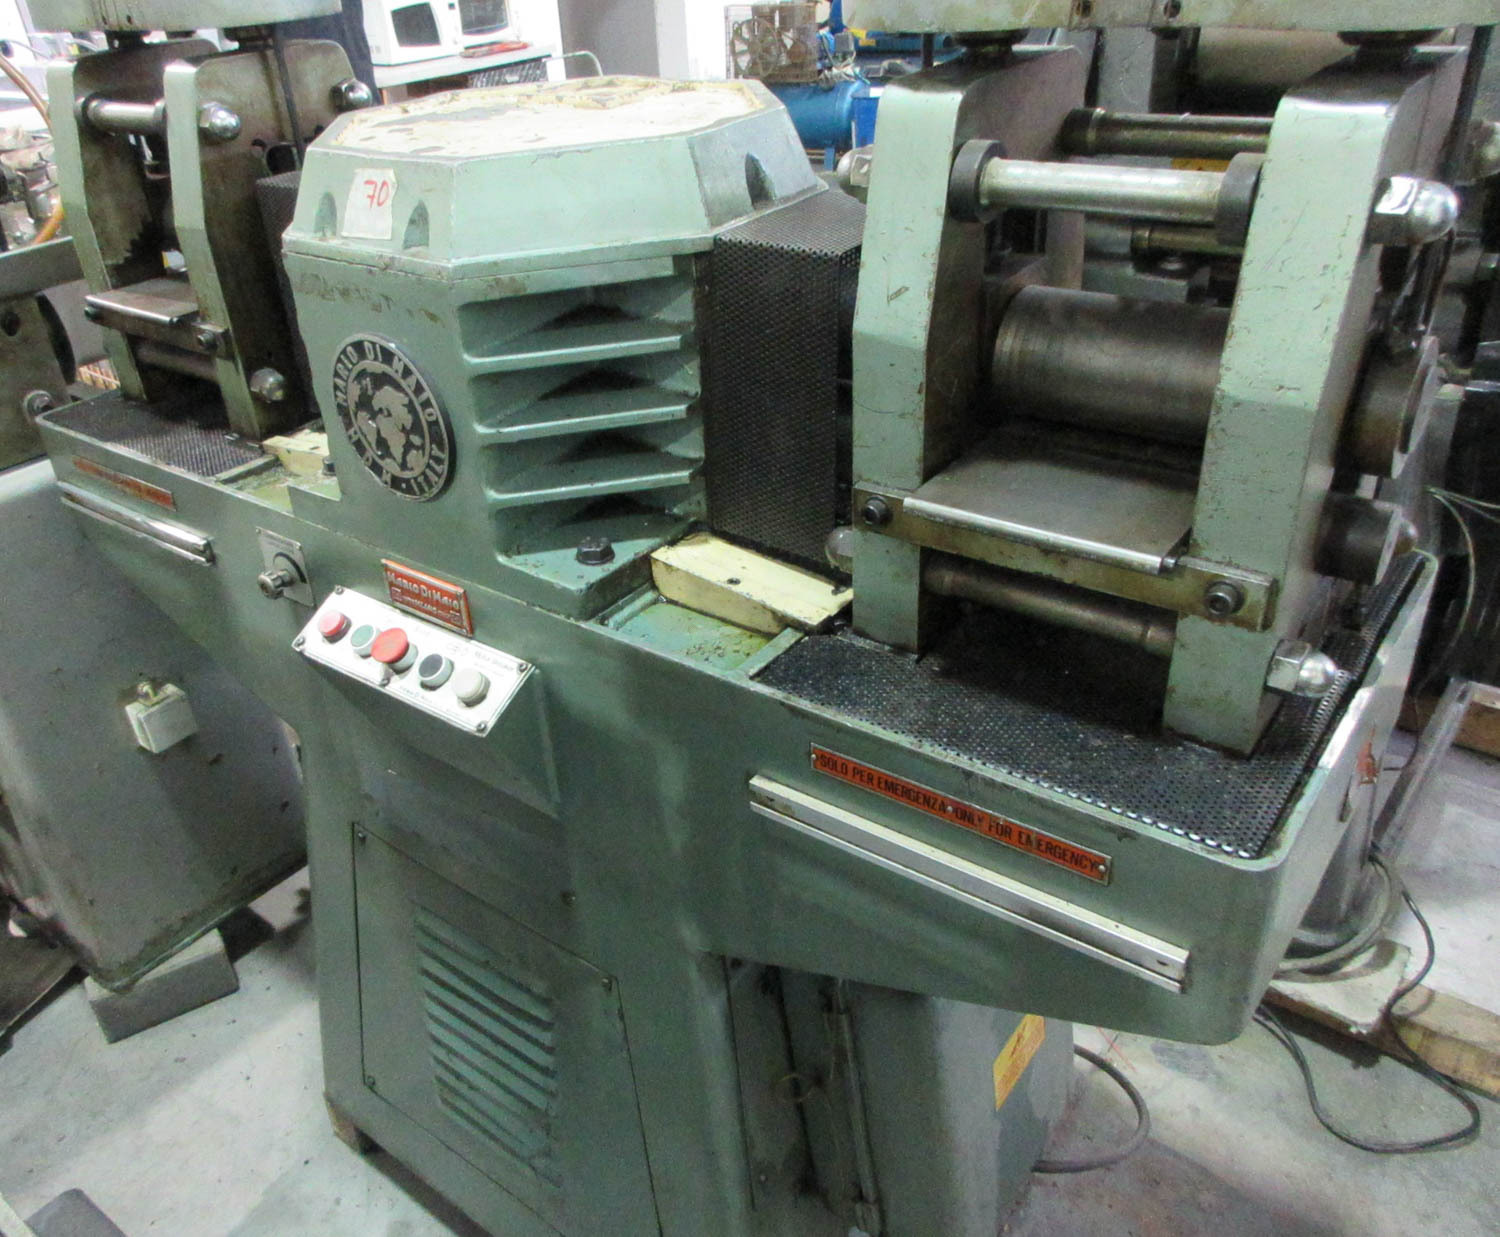 MARIO DI MAIO MDL. GLY60 AMBIL DOUBLE ROLLING MILL FOR PLATE AND WIRE REDUCTION; DOUBLE-SIDED PRESS; - Image 3 of 3